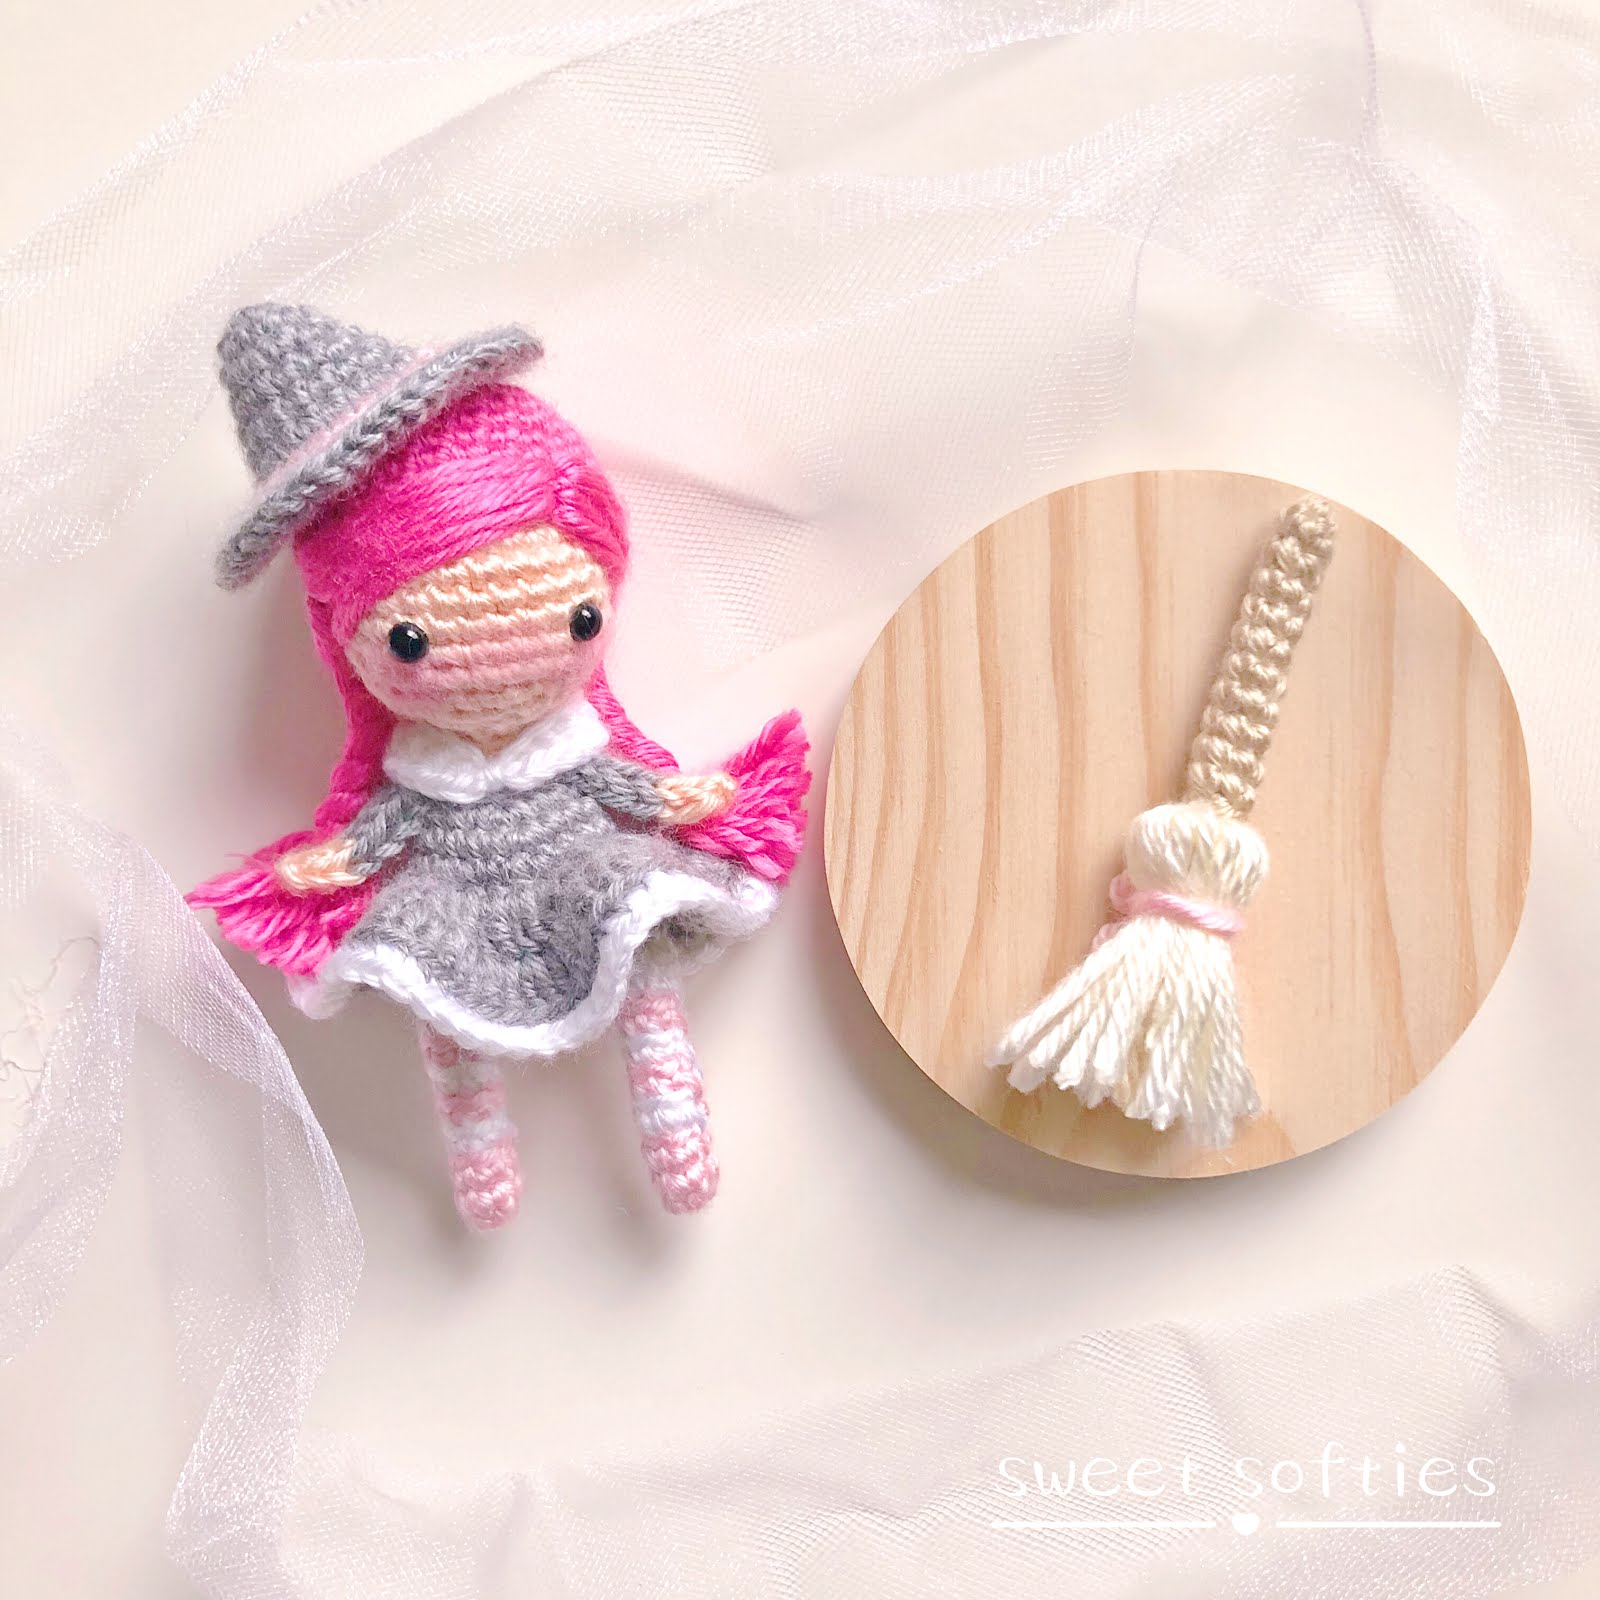 2019 Best Amigurumi Doll Patterns Part 1. Crochet toy girl design ... | 1600x1600